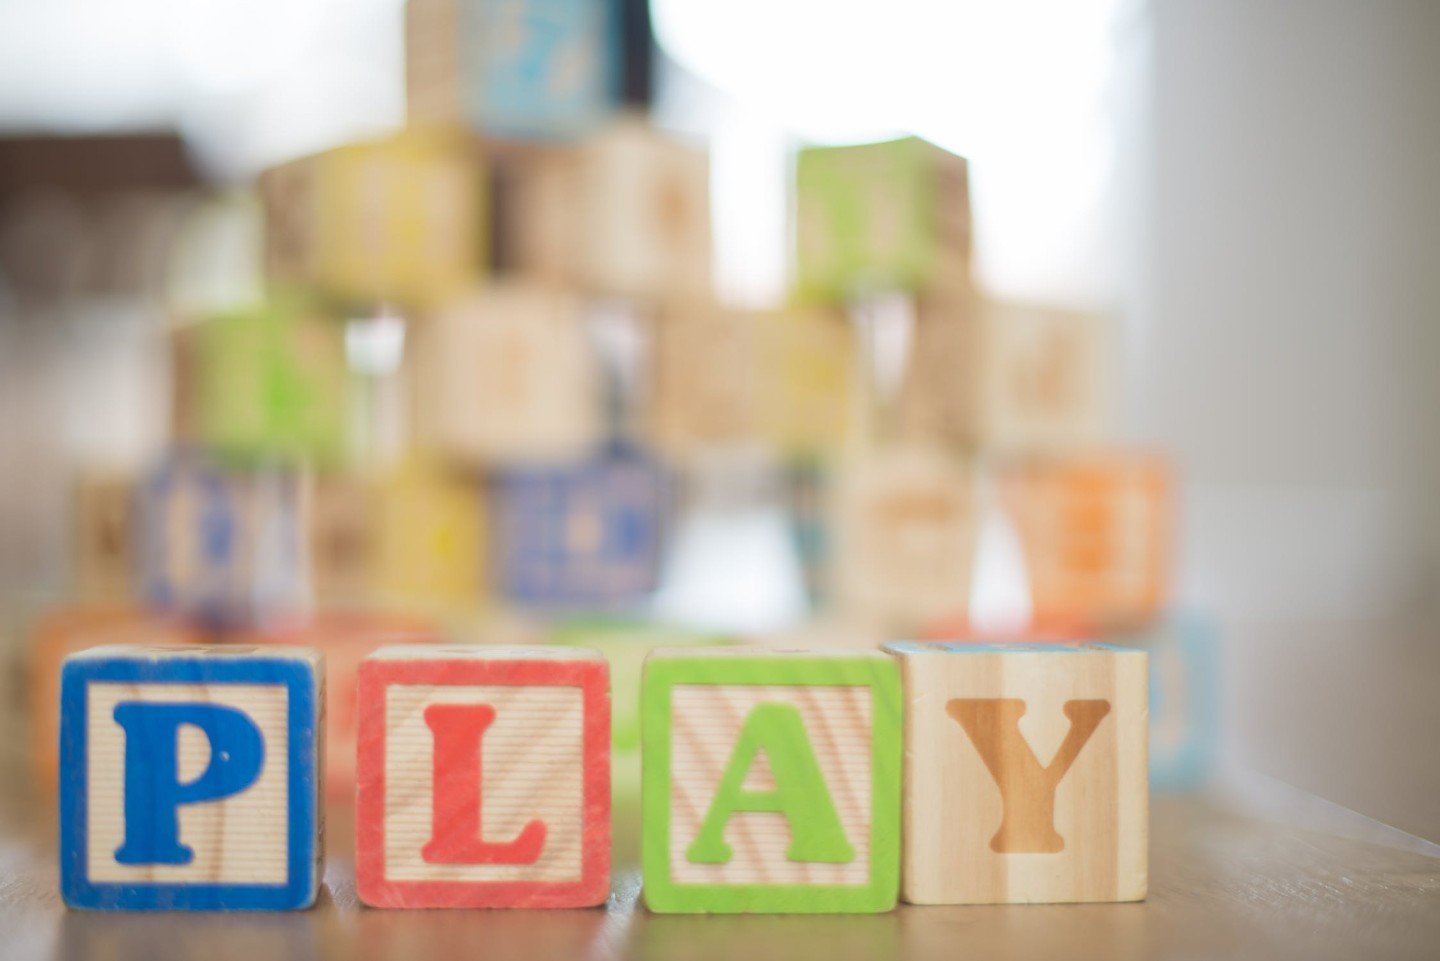 play-fun-blocks-block-591652.jpeg